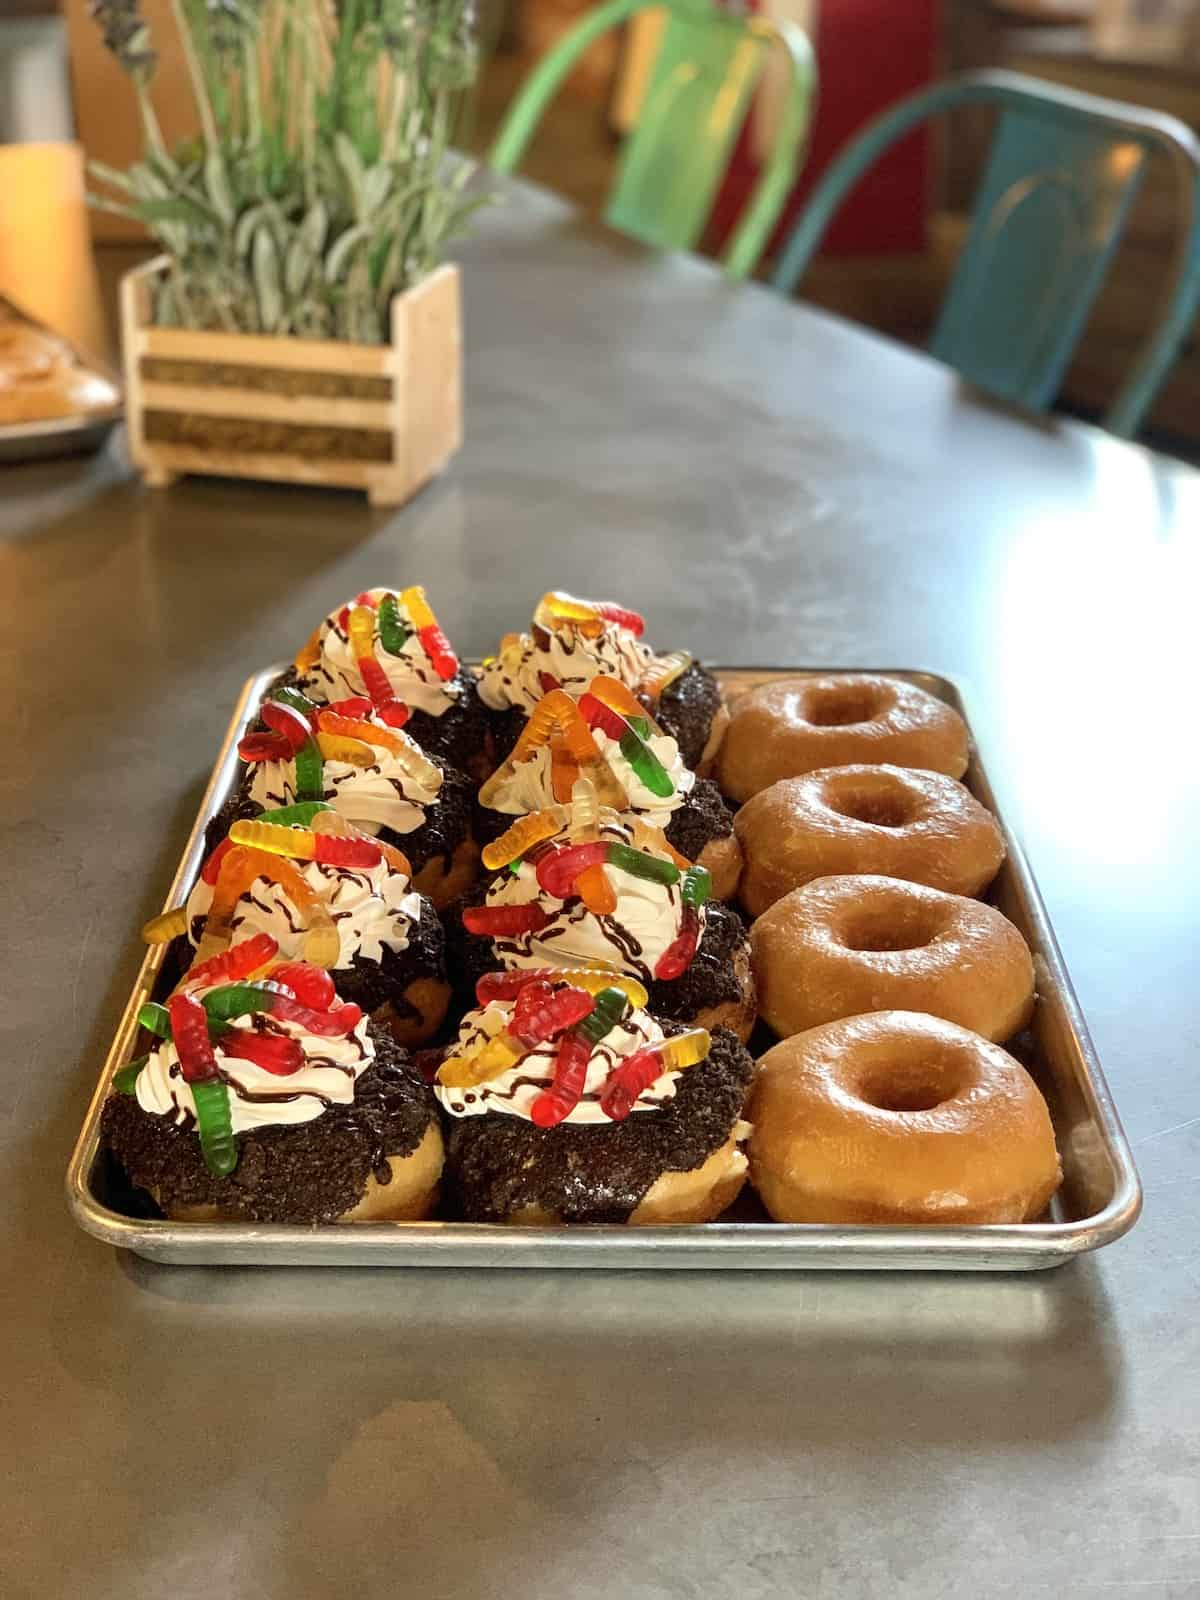 Donuts on a tray.